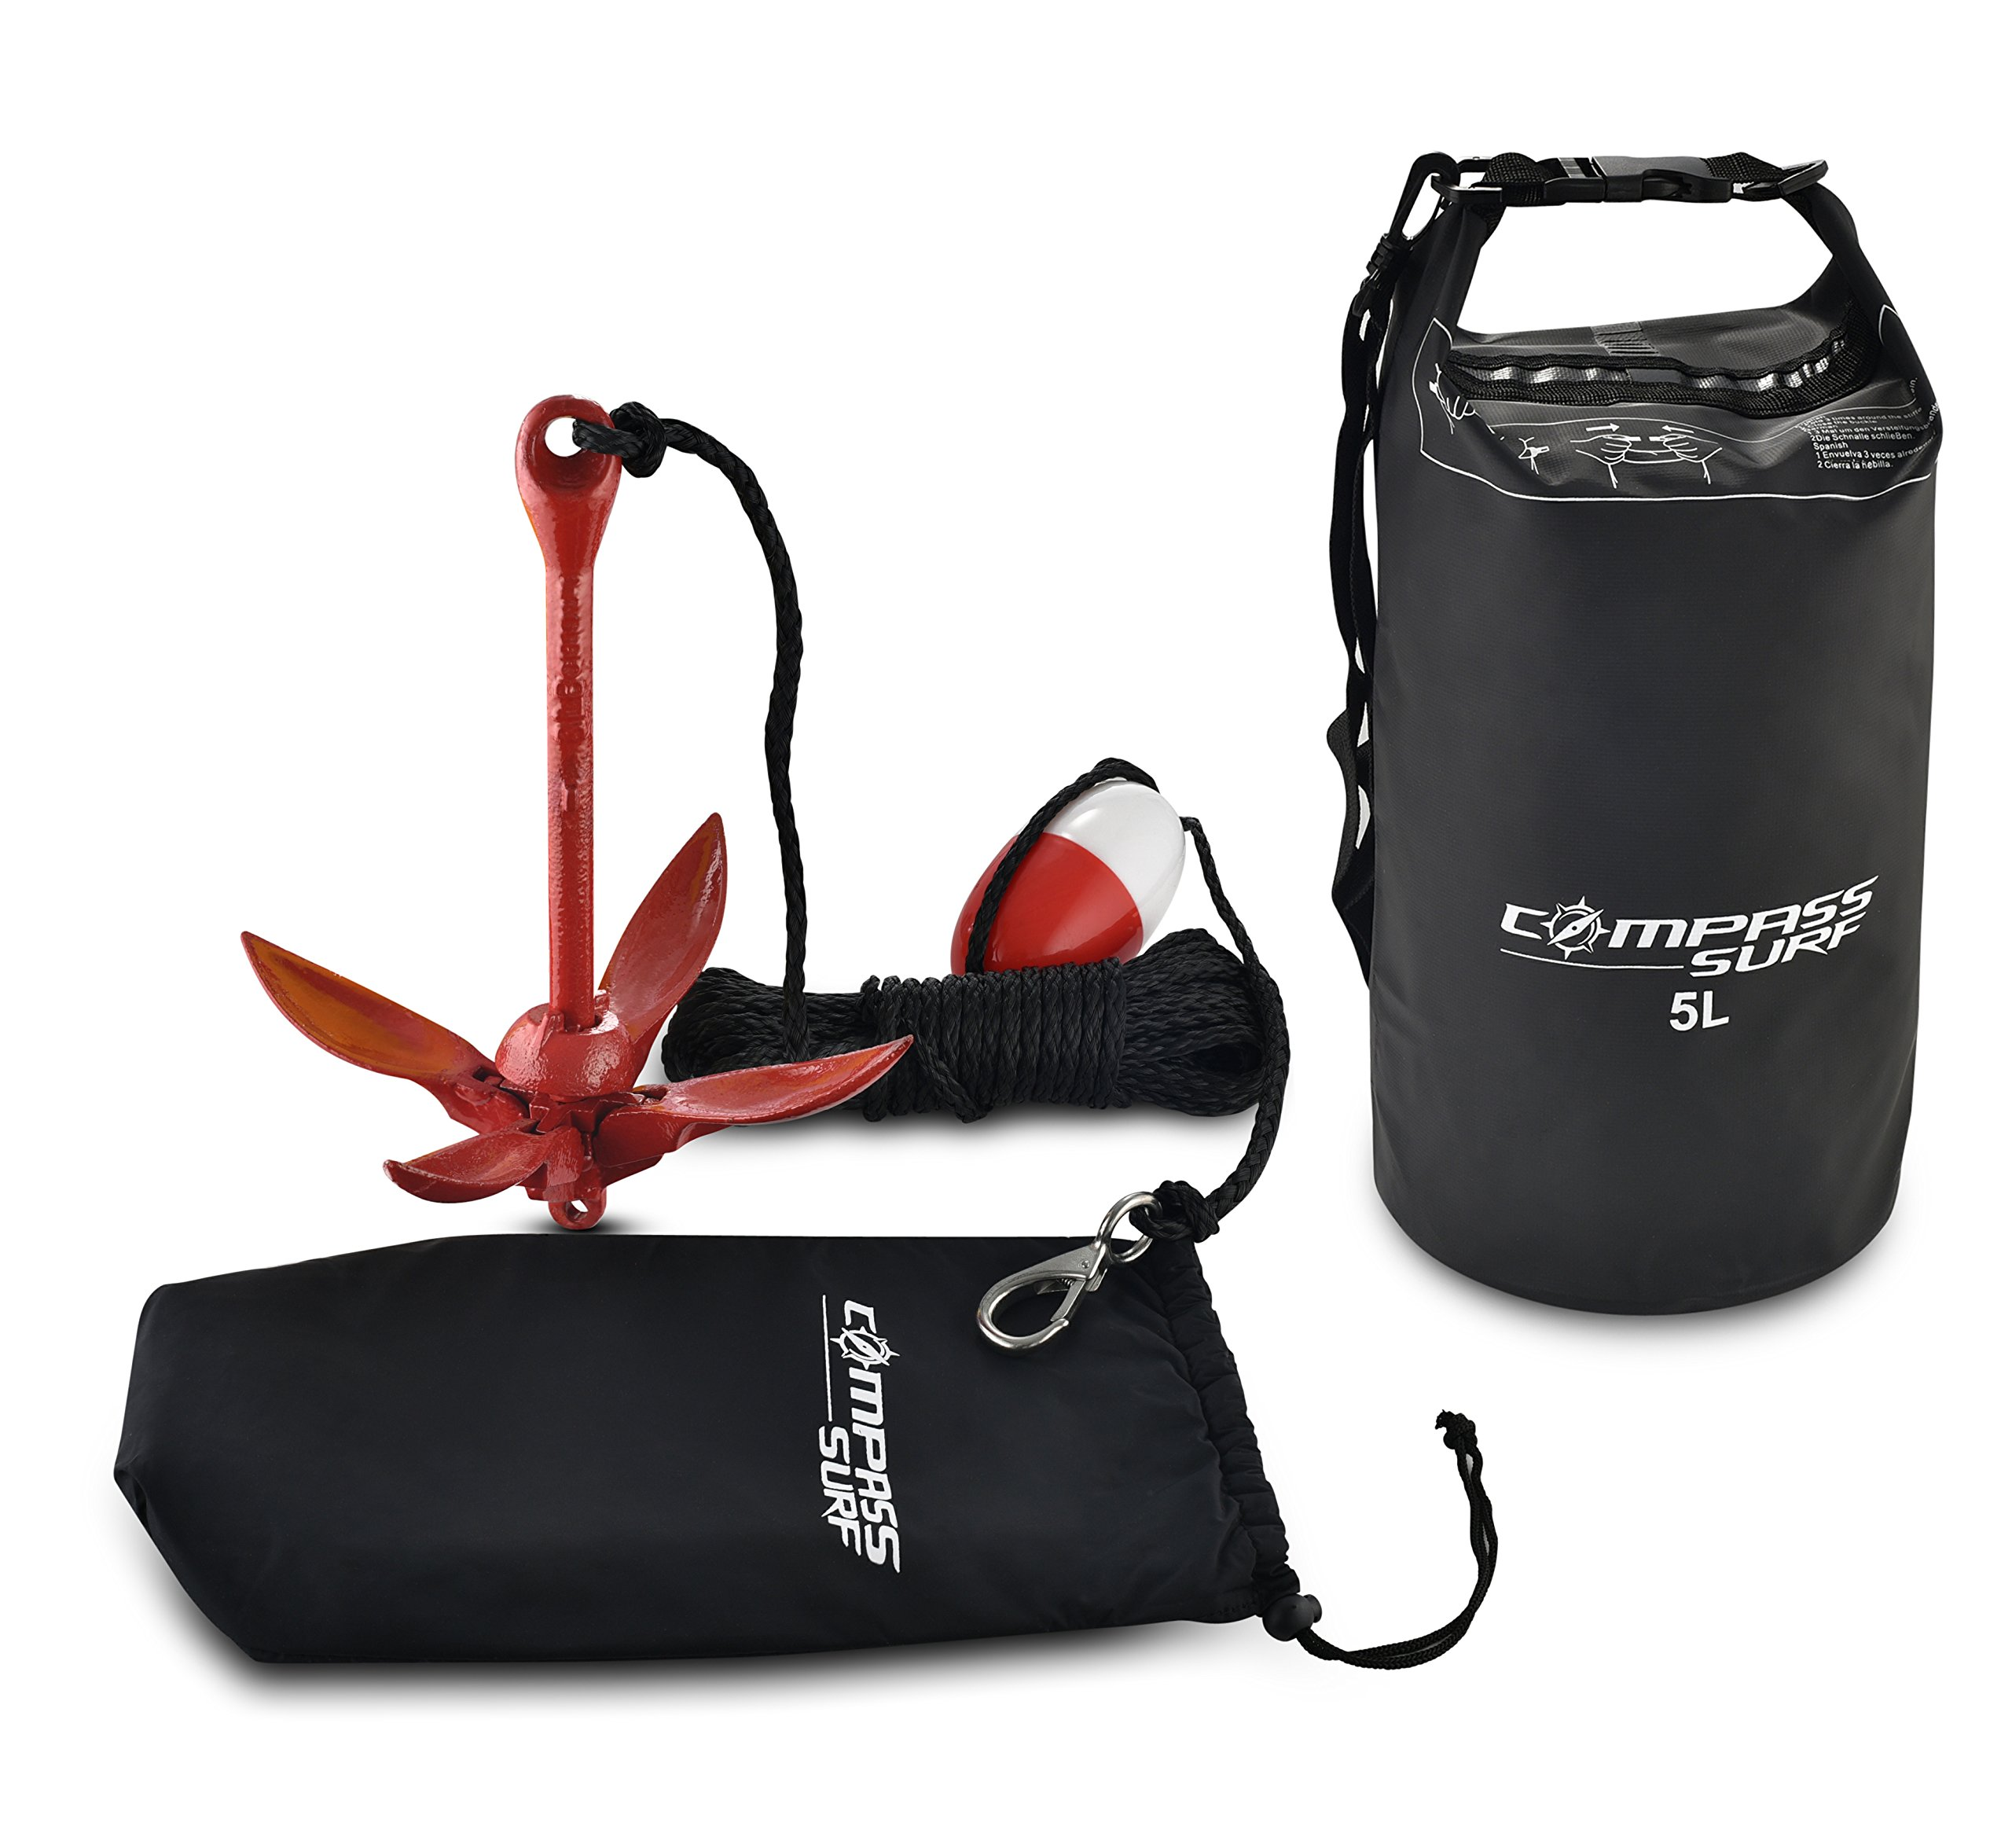 Compass Kayak Anchor Kit + Dry Bag for Jet Skis, Canoes, Floats - 3.5 lb Steel Anchor with Anti-Rust Powder Red Coating, 40 ft Marine Grade Rope, Buoy, and Stainless Steel Snap Hook.